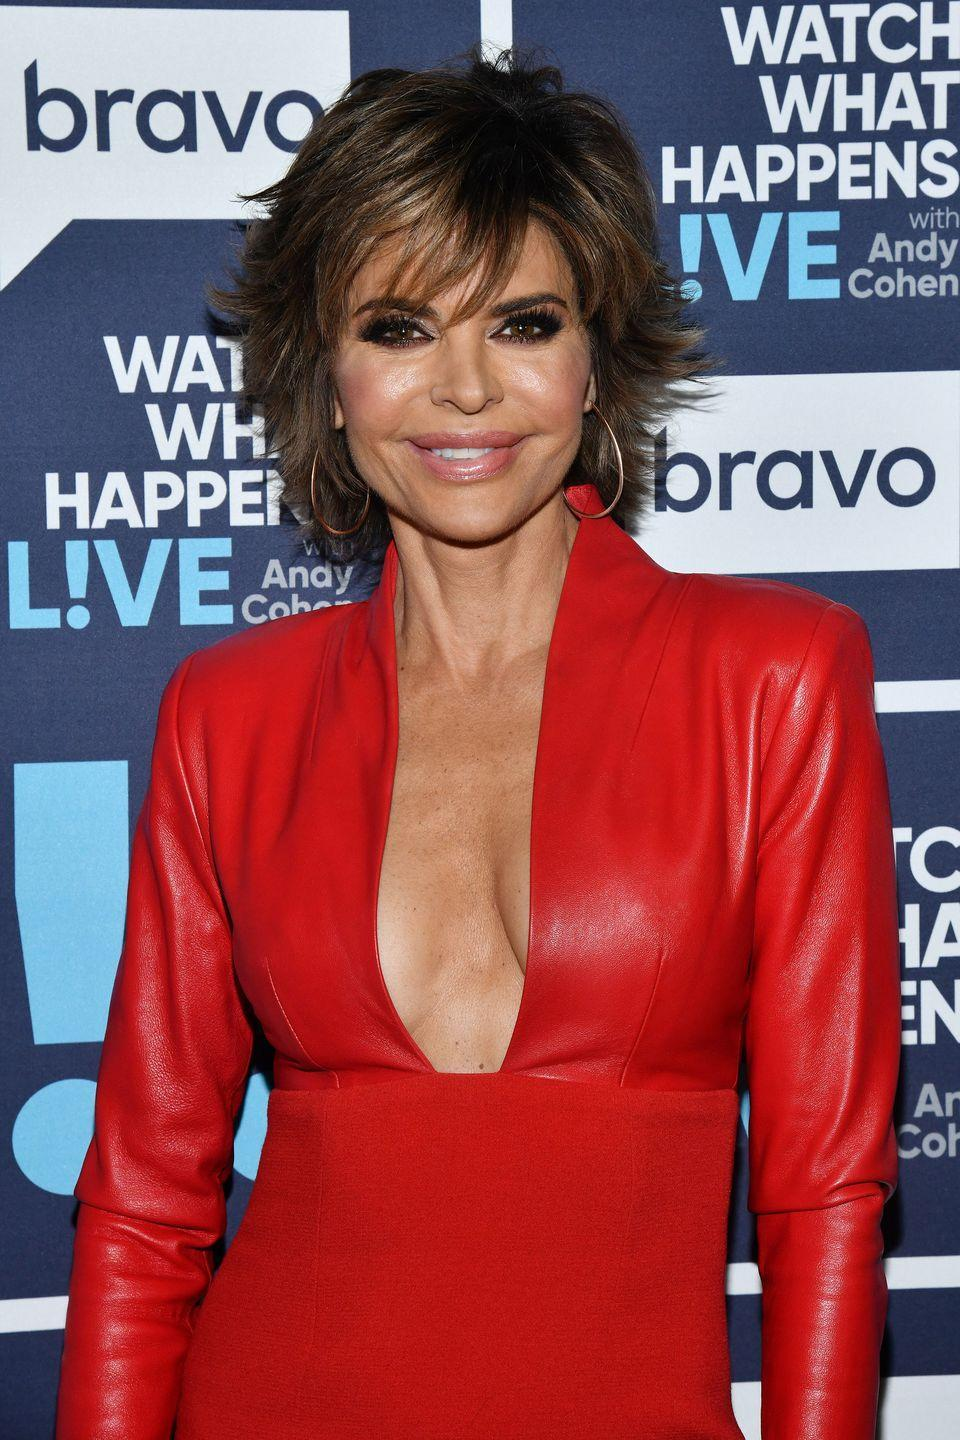 "<p><em>Real Housewives of Beverly Hills </em>star Lisa Rinna is known for her lips, so it was a surprise when she opened up about getting her injections reduced years later. ""I have it like that for my whole career, right?"" <a href=""https://www.tvguide.com/news/lisa-rinna-lip-trouble-today-video-1062939/"" rel=""nofollow noopener"" target=""_blank"" data-ylk=""slk:Lisa said"" class=""link rapid-noclick-resp"">Lisa said</a>, adding it was a ""stupid thing to do at 24."" ""So then cut to a couple of years ago, I have a doctor remove as much as they possibly can because it got to the point where they were yucky. You know, they get hard. It's gross. So they are now whatever that was after they took out as much of the silicone as they could.""</p>"